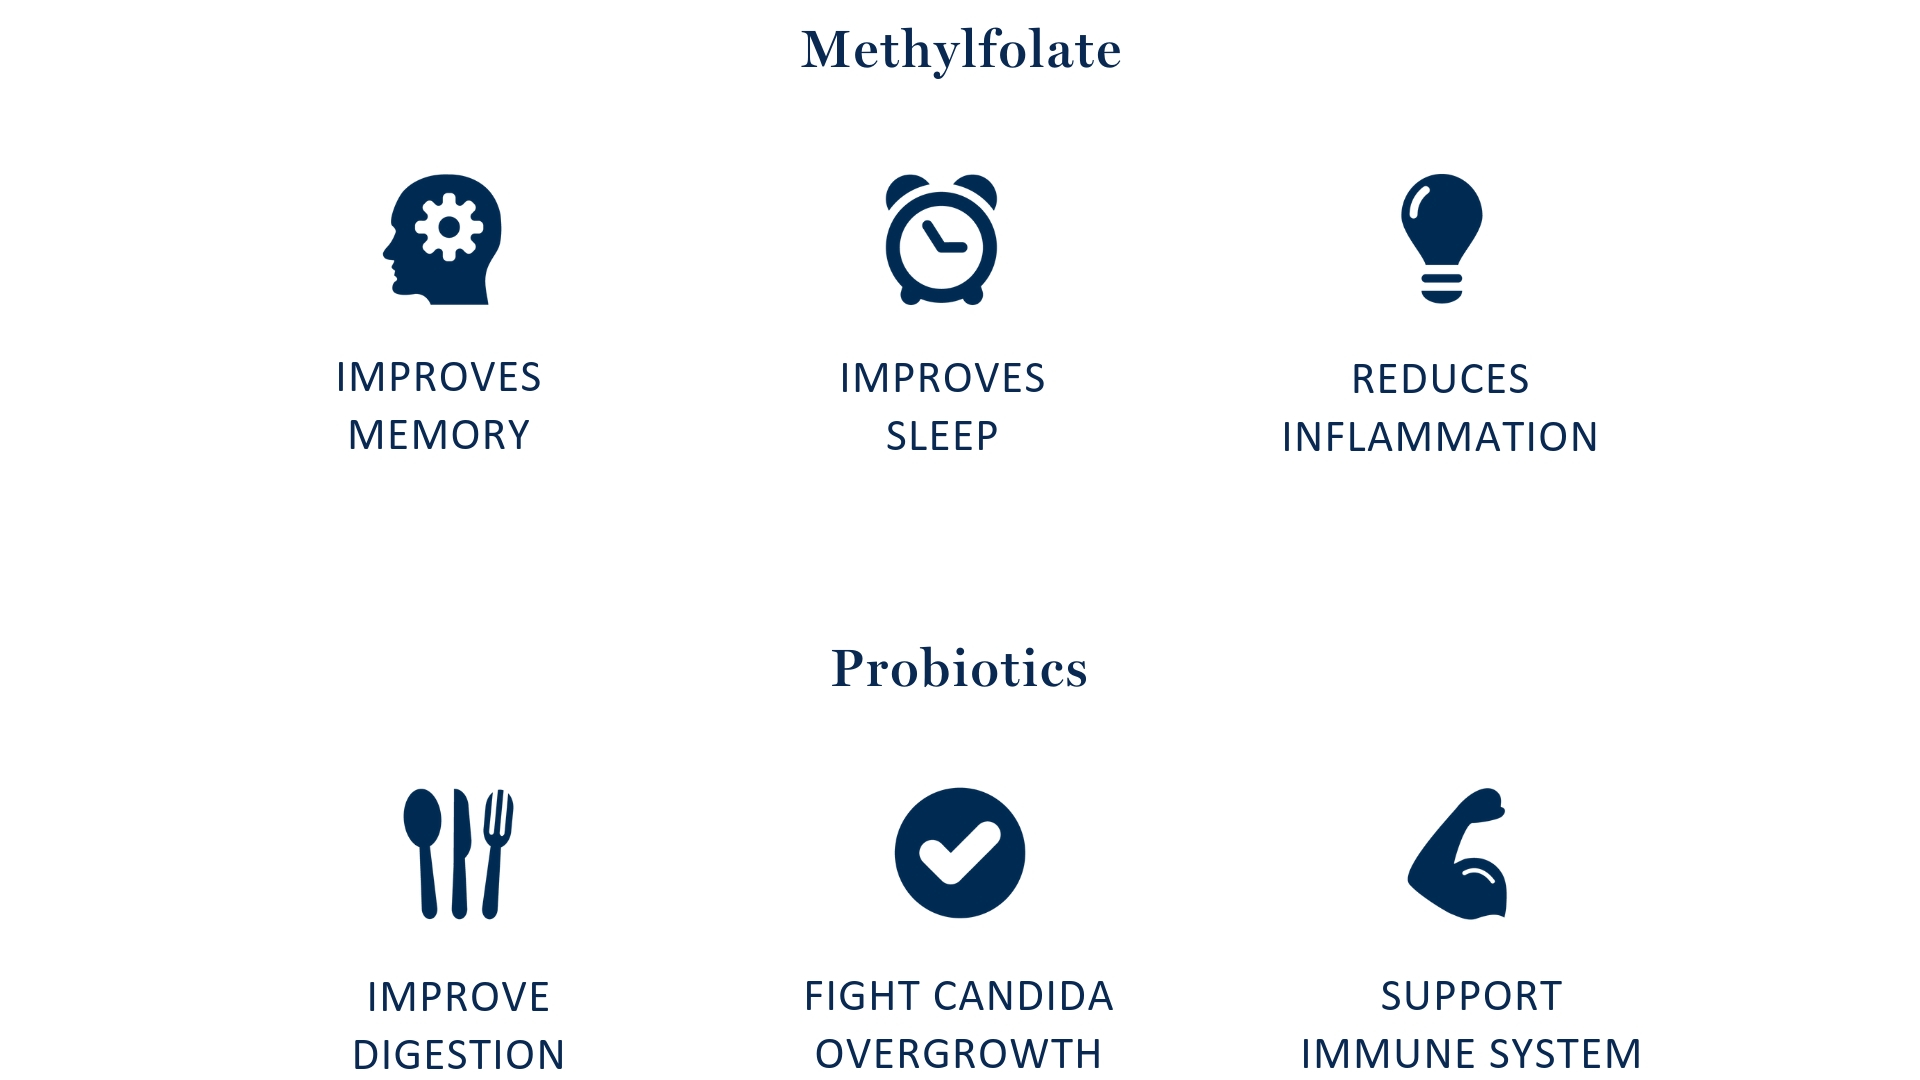 Benefits of Methylfolate & Probiotics